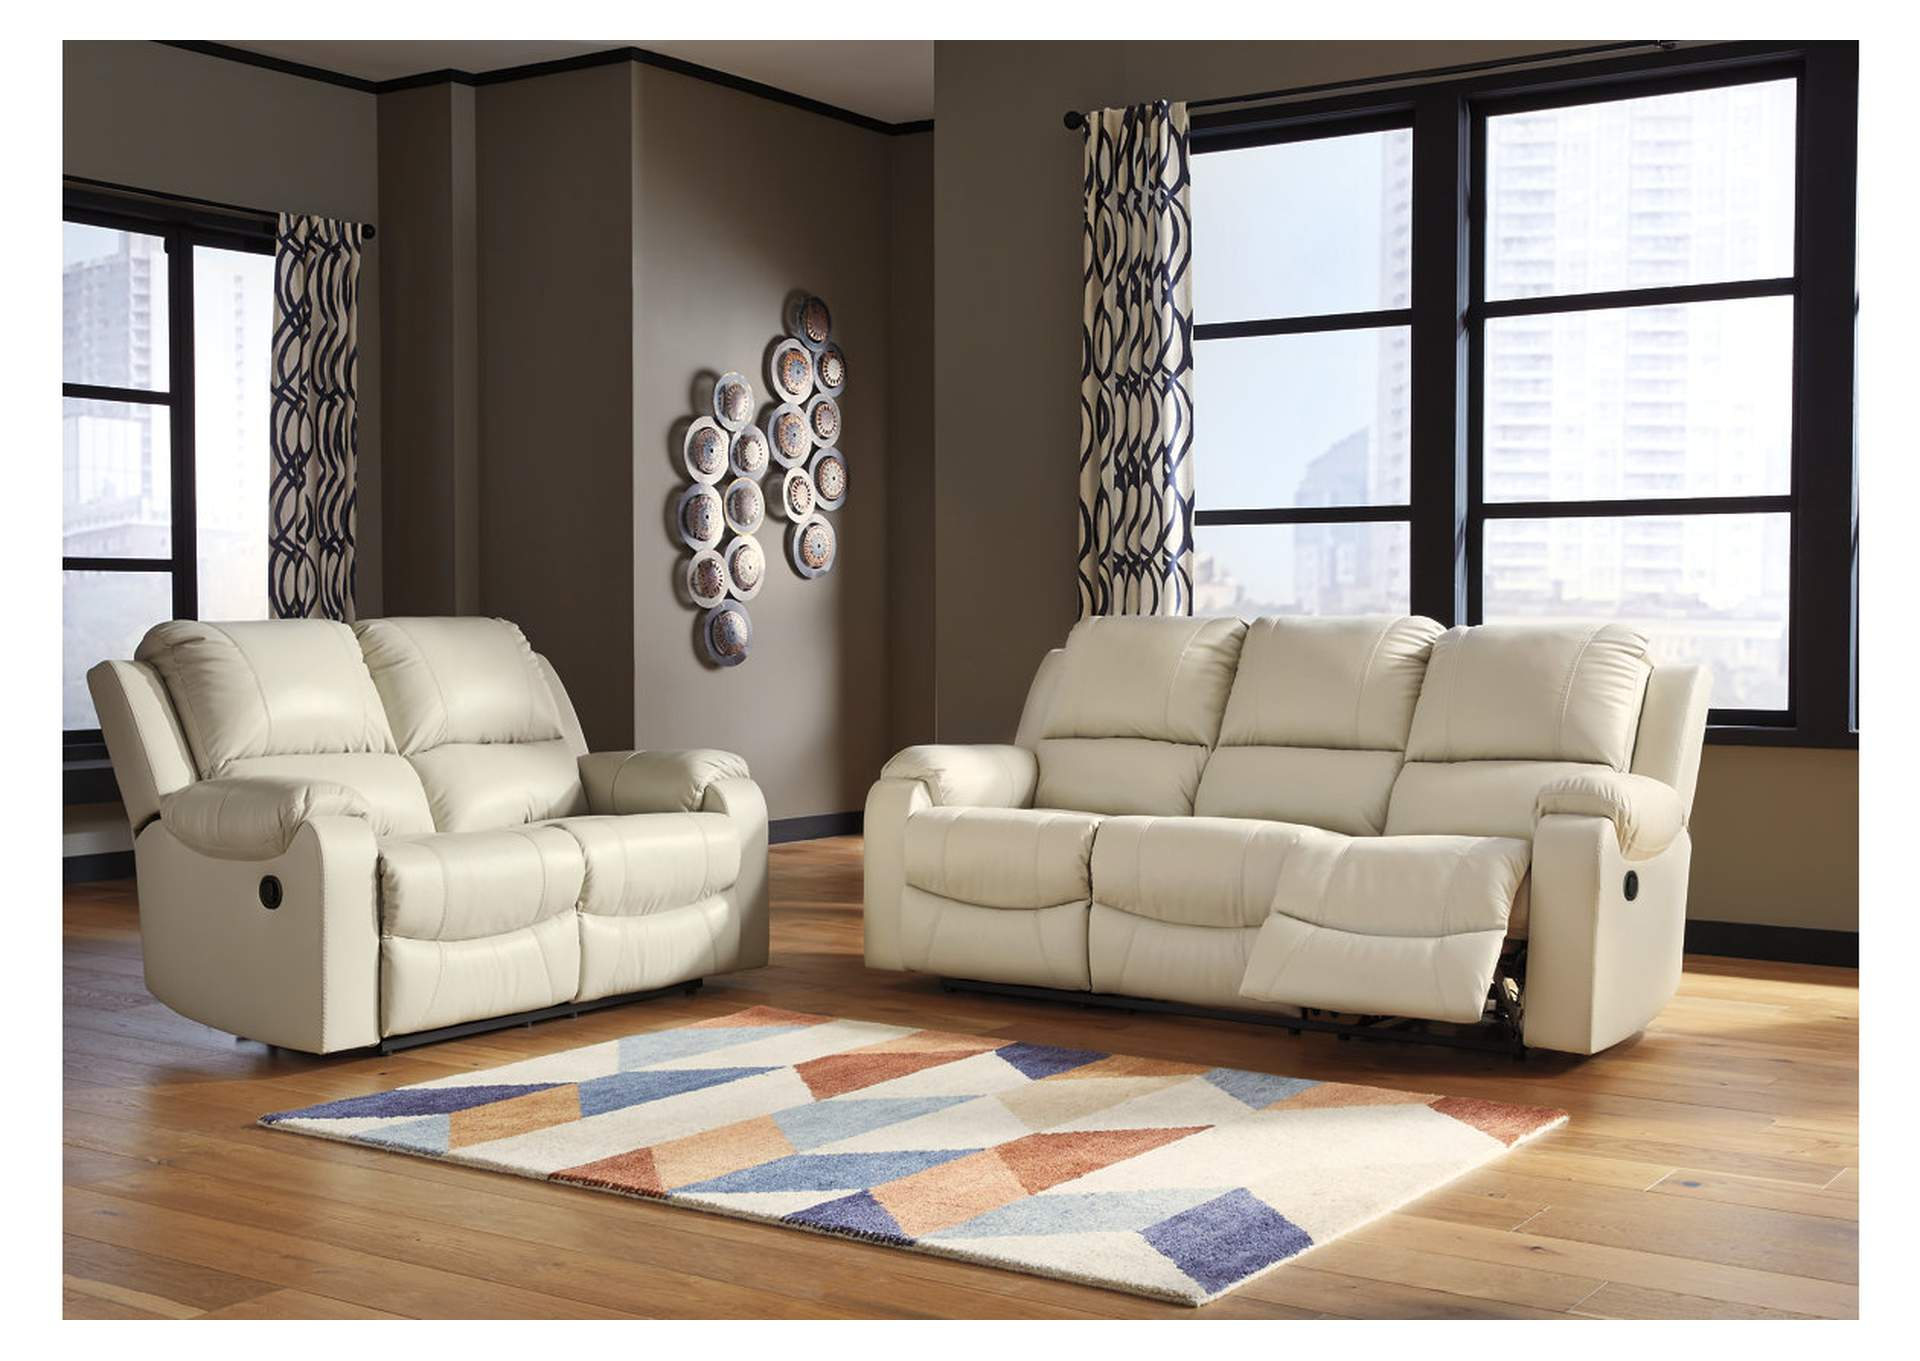 Rackingburg Cream Reclining Sofa & Loveseat,Signature Design By Ashley